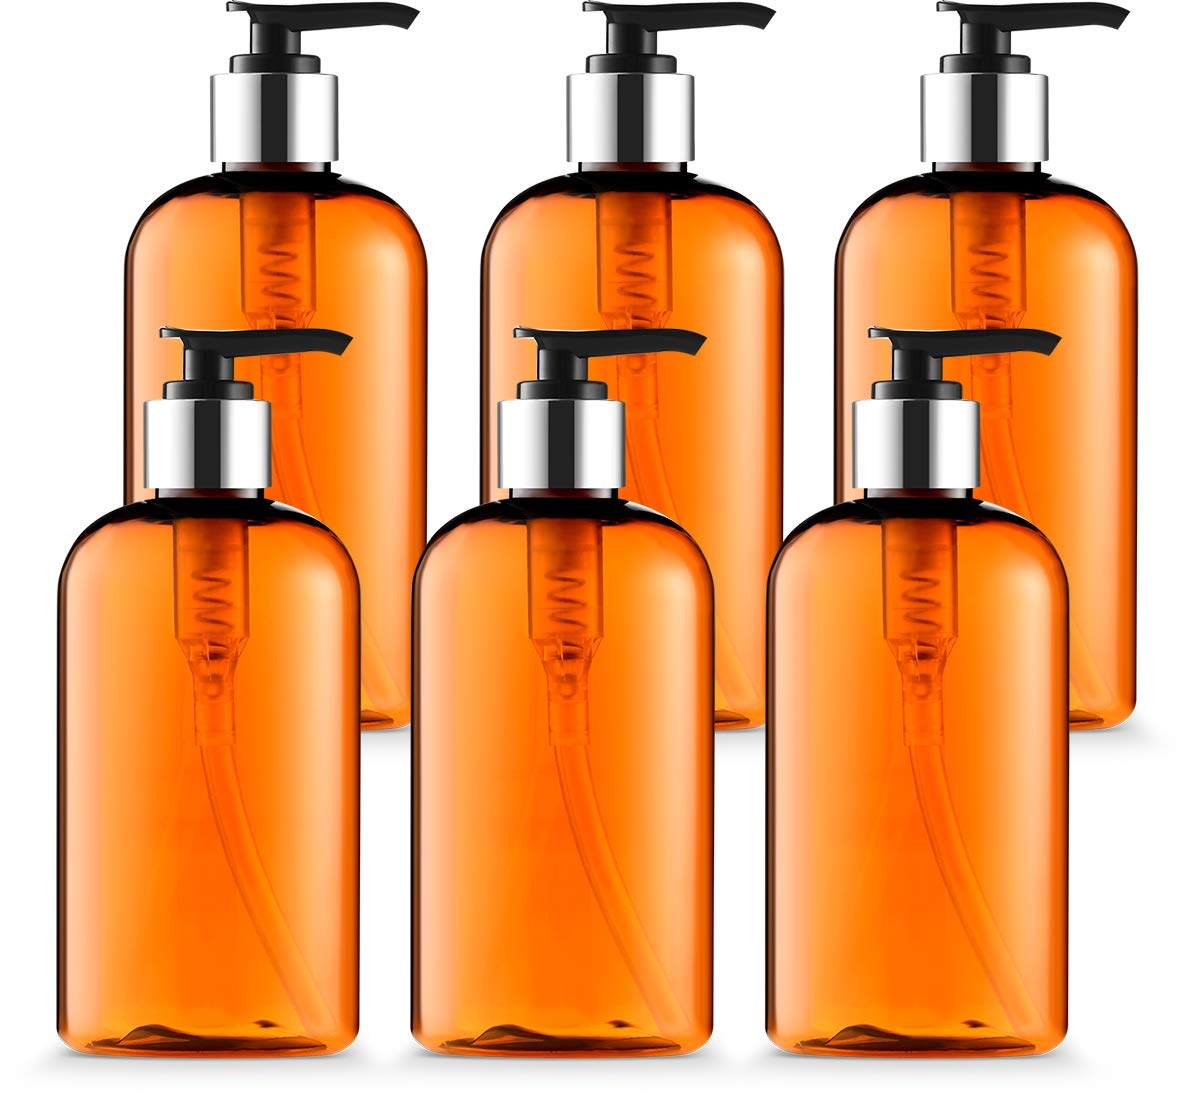 Empty Lotion Bottle 8 Oz. with Black-Silver Pump Dispenser, Light-Amber Color, Great for – Creams, Body Wash, Hand Soap, Self-Tanners, Bronzers and Massage Lotion Pack of 6